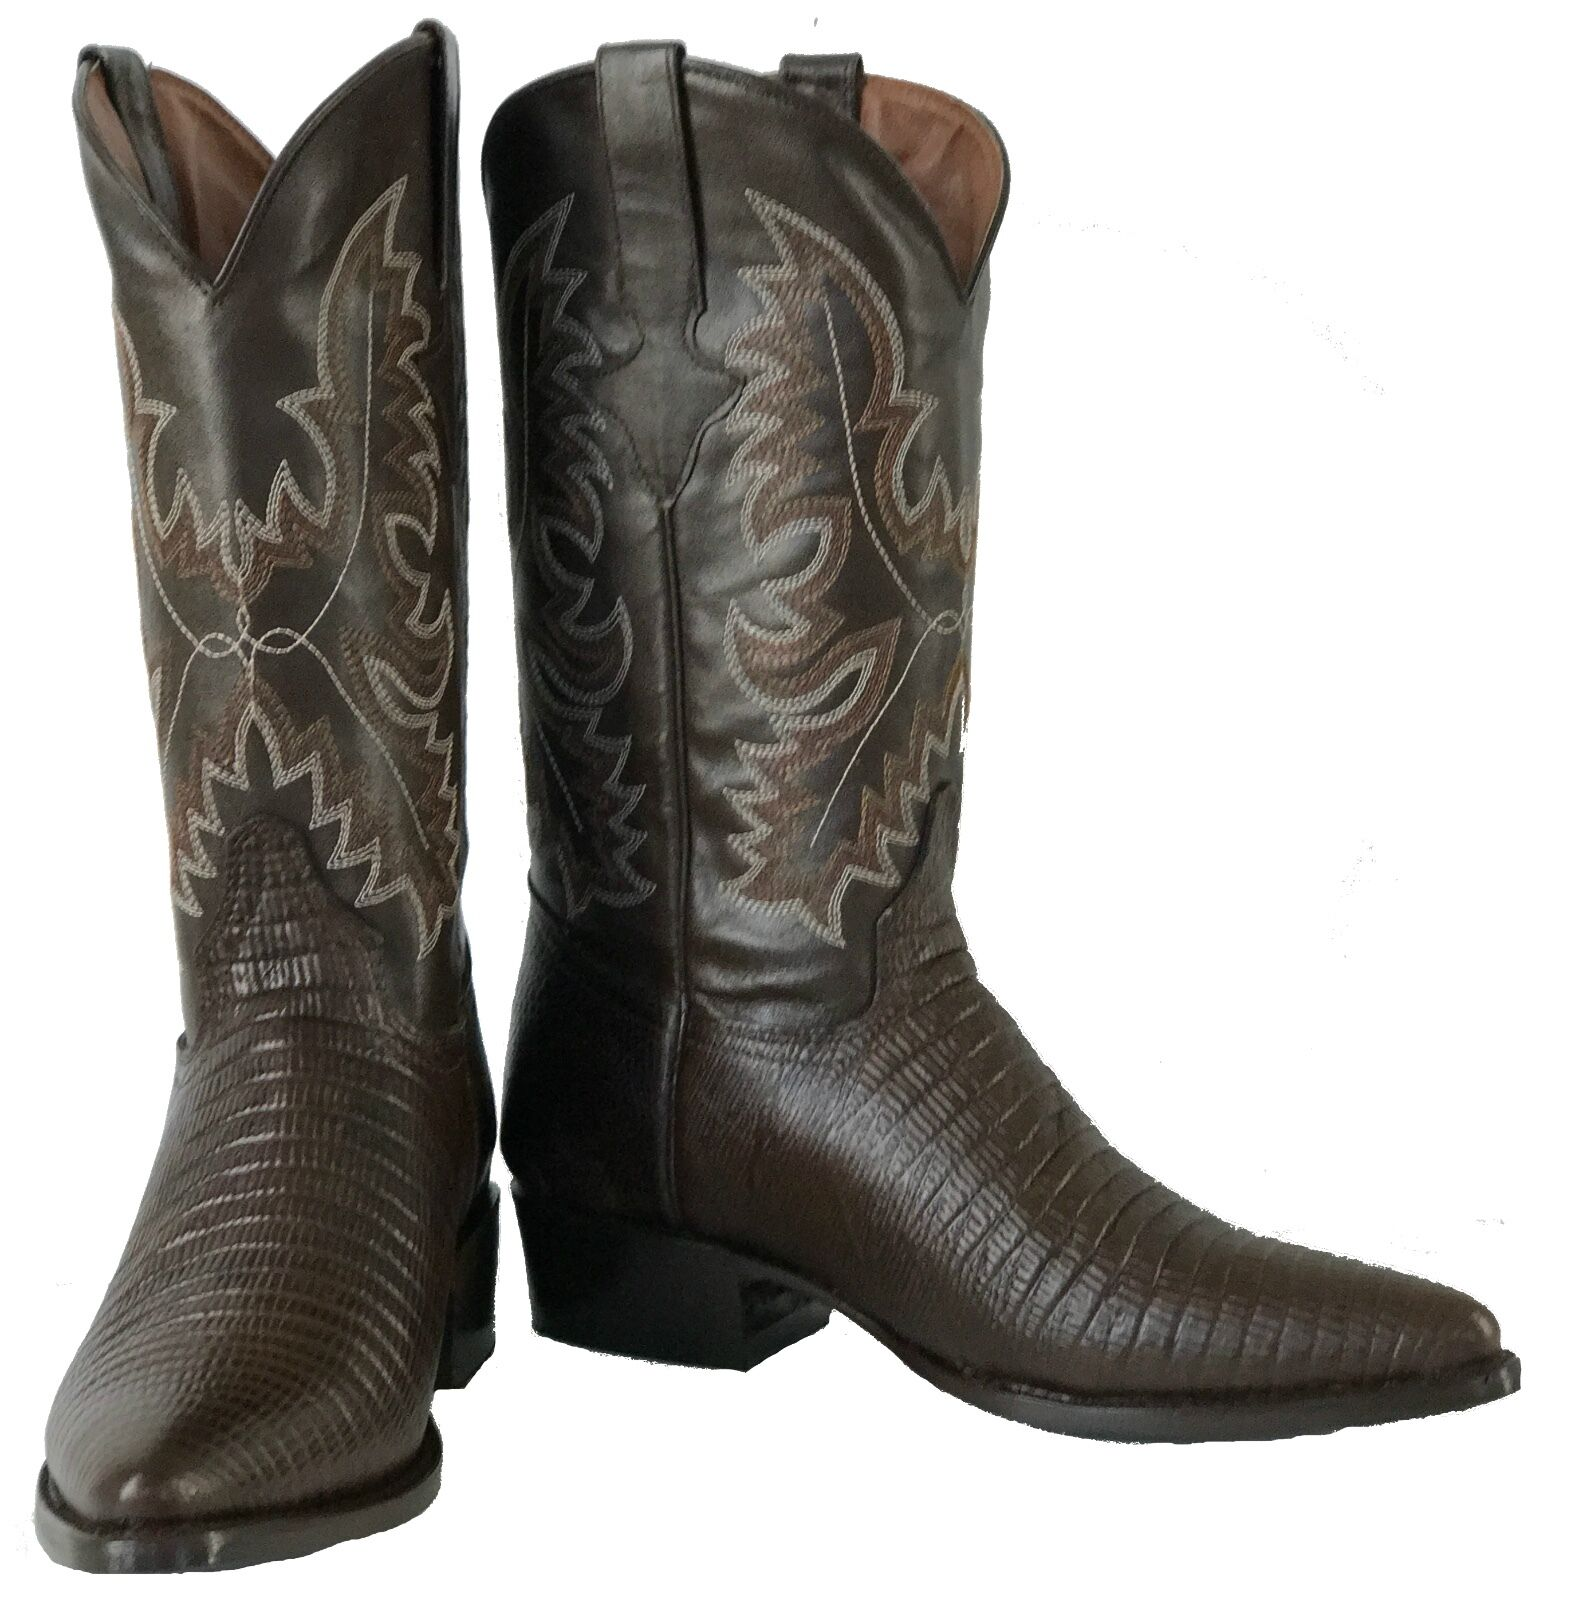 Men's New Exotic Lizard Design Leather Cowboy Western Rodeo Boots Brown J Toe